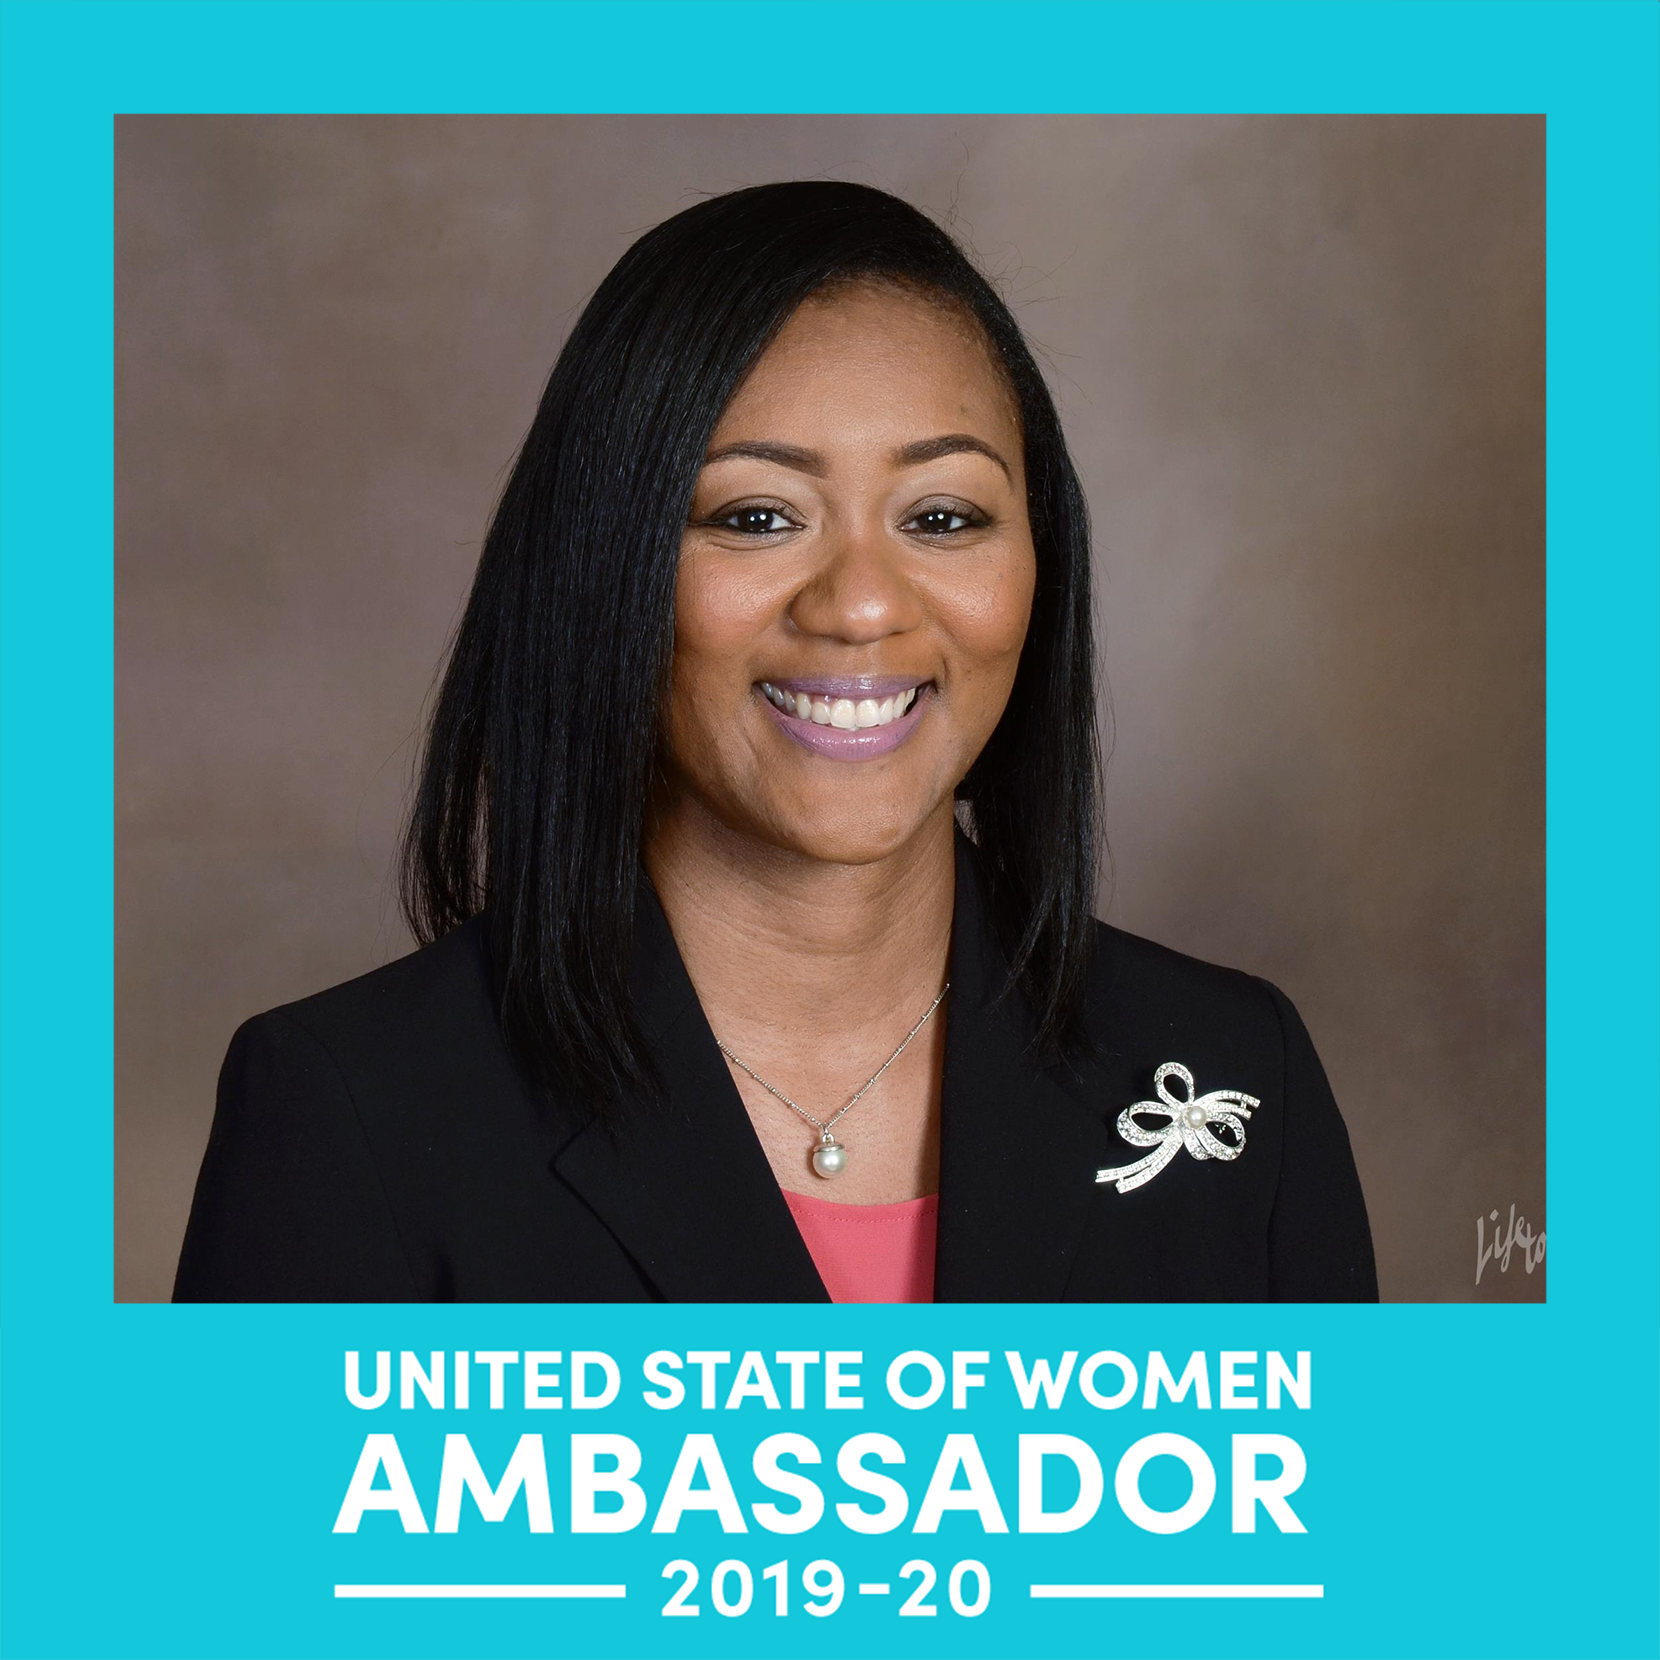 Social work student to be United State of Women ambassador - Tommie Media